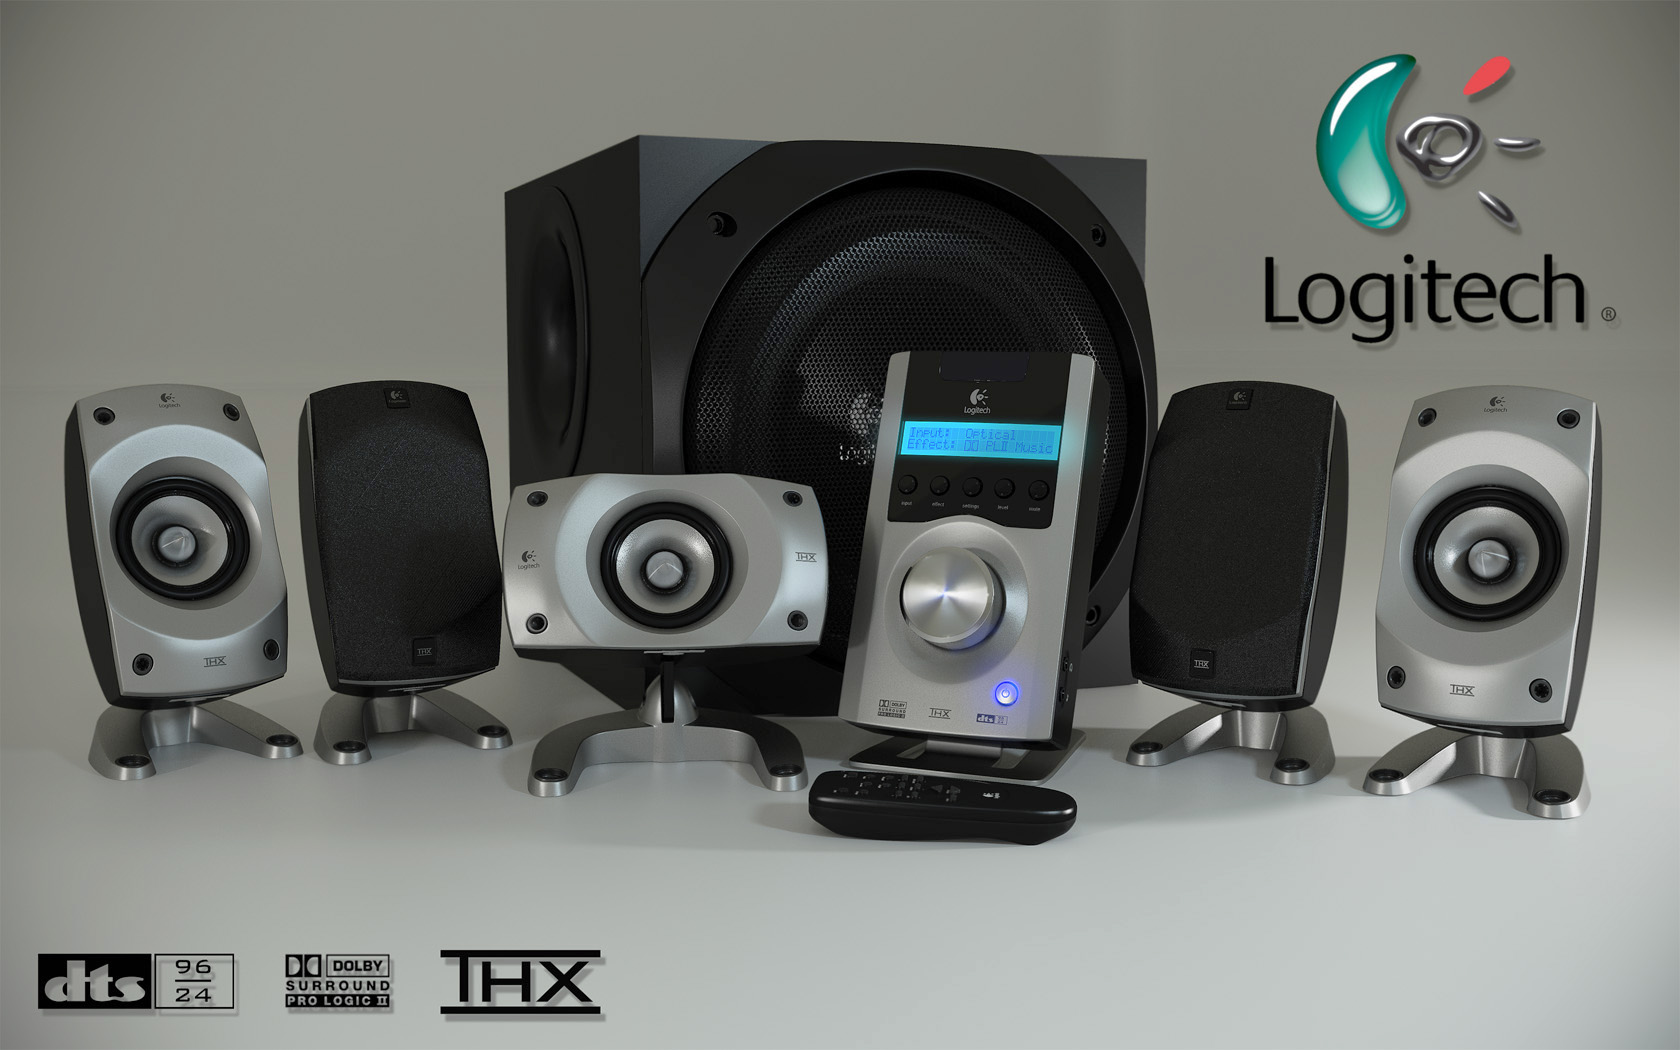 How Can I Extend The Length Of My Logitech Z623 Satellite Speaker Connection additionally Verifone Accessories Cable Mod104p4c O3200pinpad08m 0704206r besides Bose CineMate GS Series II Digital Home Theater Speaker System further All furthermore Logitech Z906 Review English Version. on logitech z906 speaker system review